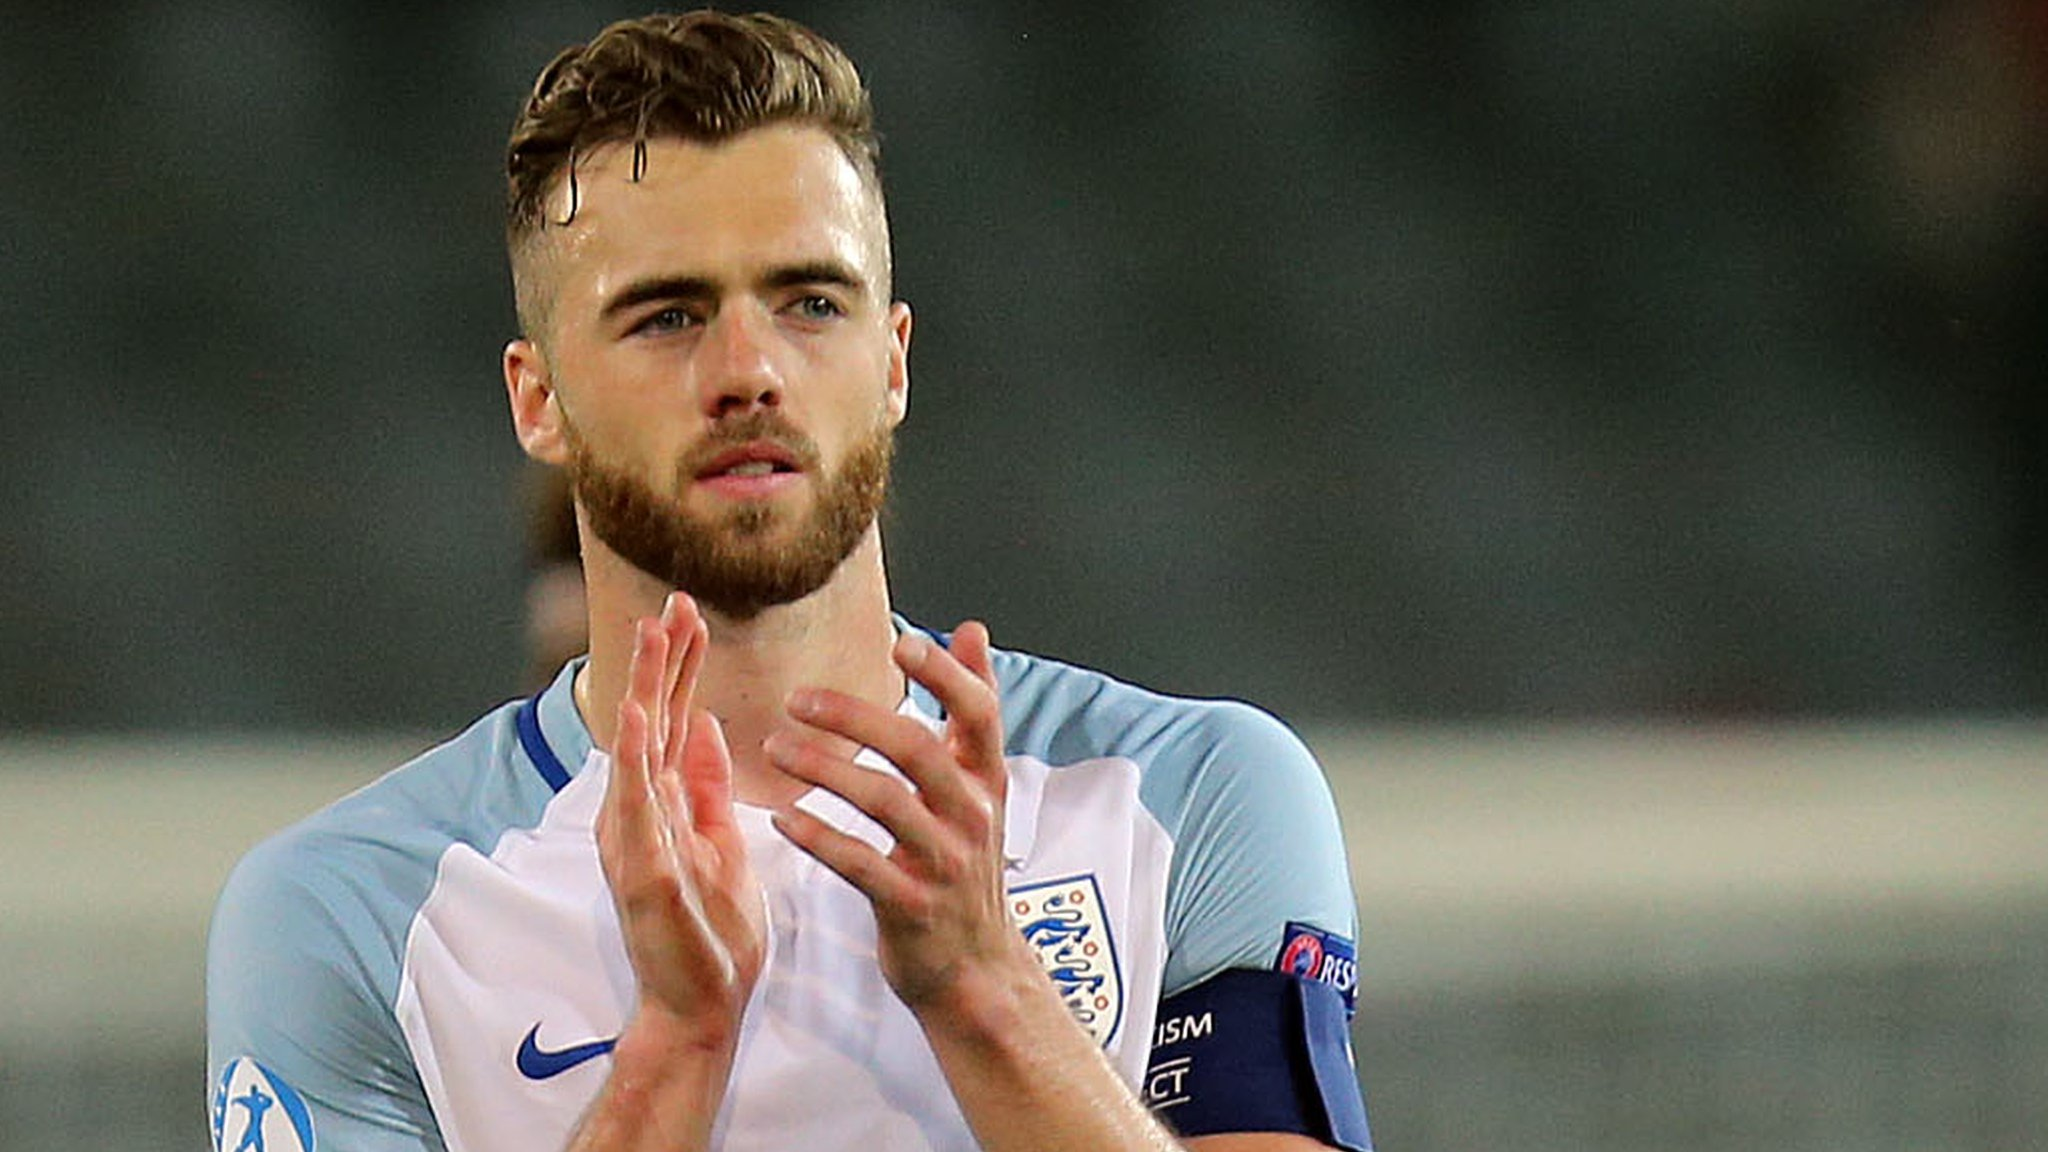 'No better time to be an English player' as U21s prepare for Euro semi